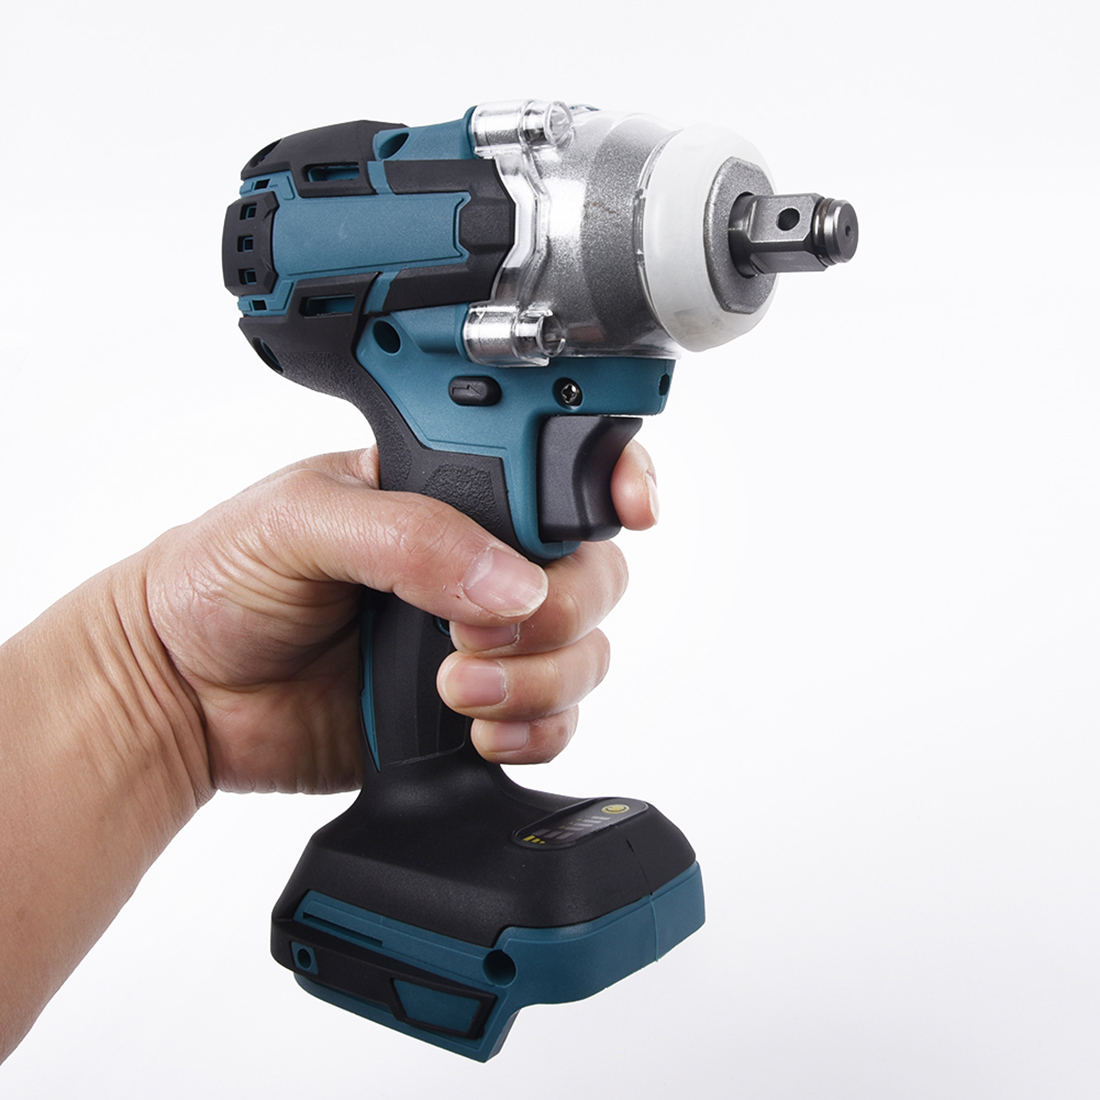 18V 1/2inch 520Nm Cordless  Impact Wrench Body Brushless Replacing Spare Parts|Electric Wrenches| |  - title=